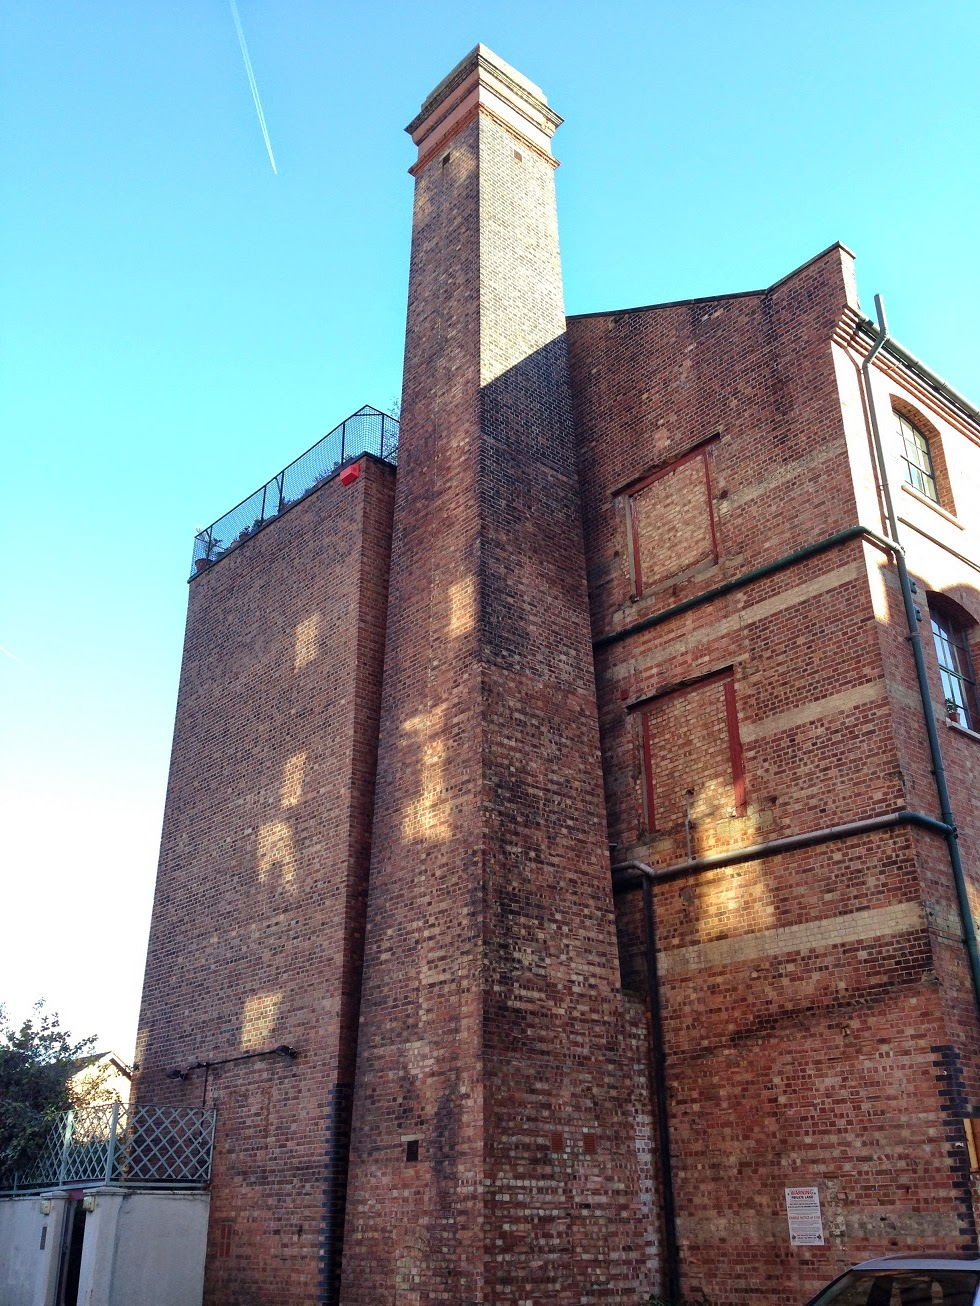 Spratt's Patent Limited dog food factory, Limehouse Cut, London